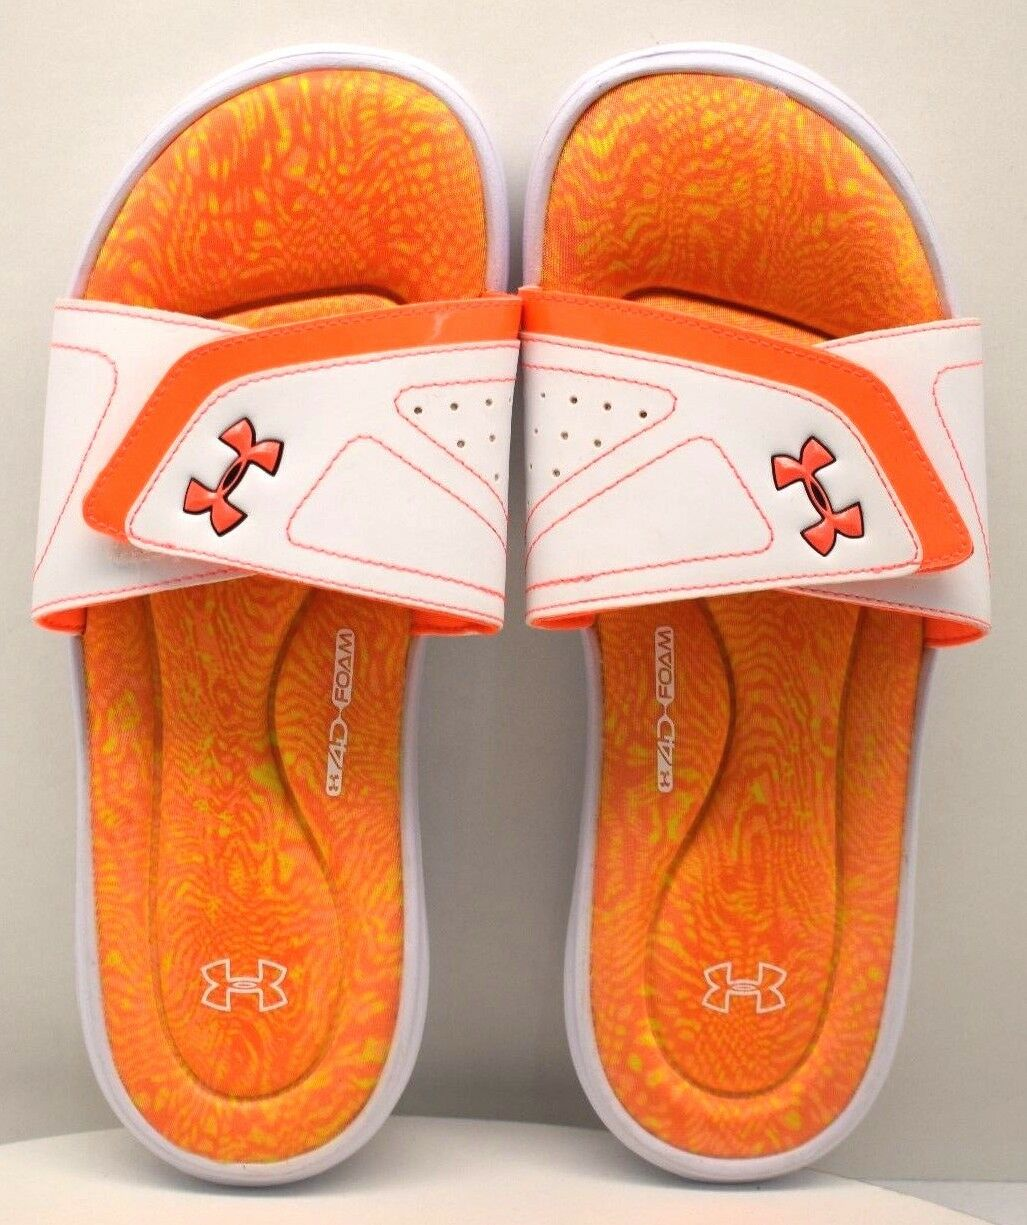 Under Armour Ignite Swirl Size Slide Orange White US Size Swirl 11 FREE SHIPPING BRAND NEW 18a9a4